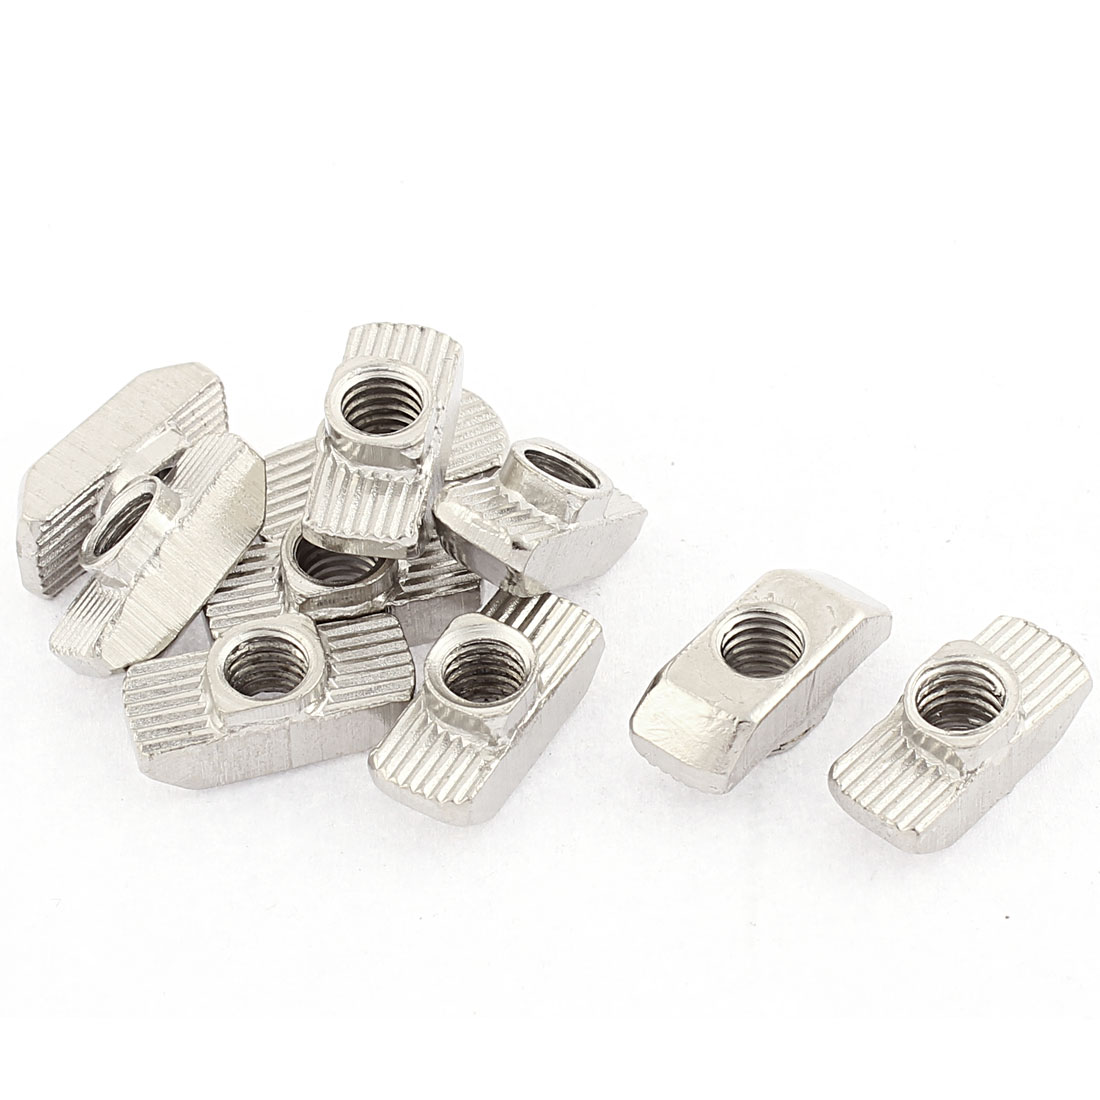 M6 Thread Dia Drop In Type T Slot Nuts Silver Tone 10pcs